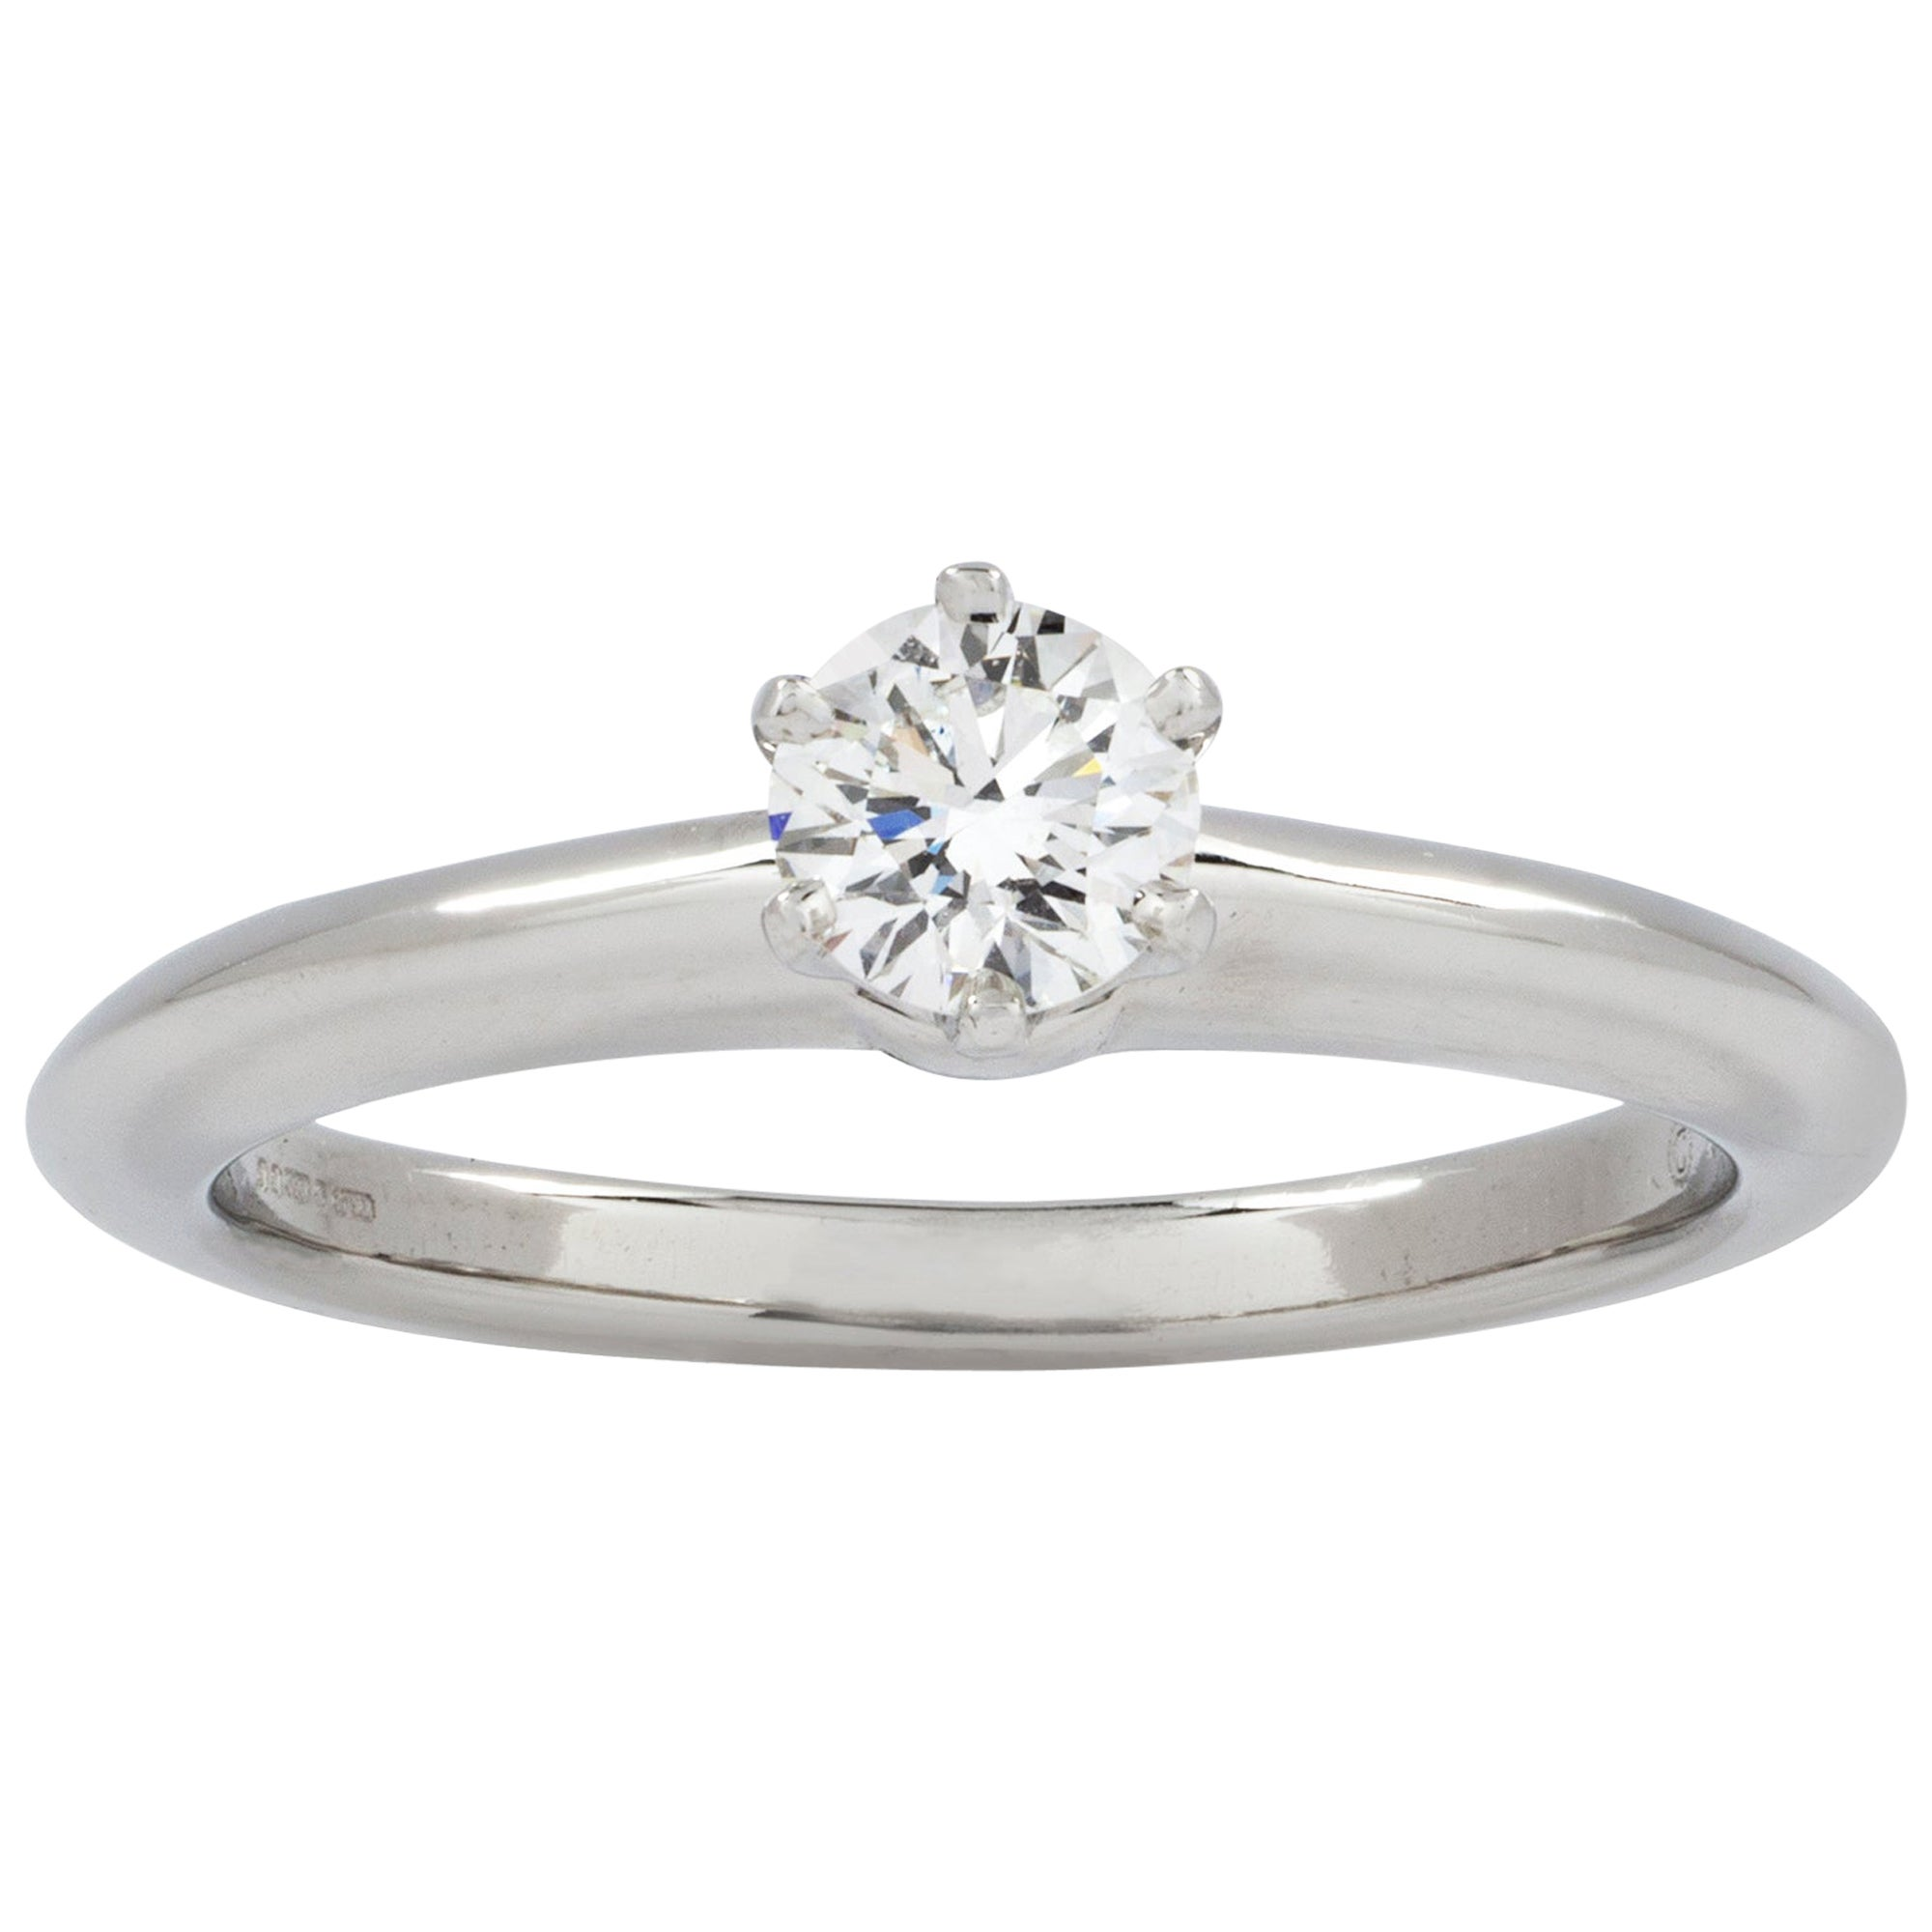 Tiffany & Co. Diamond Solitaire Ring